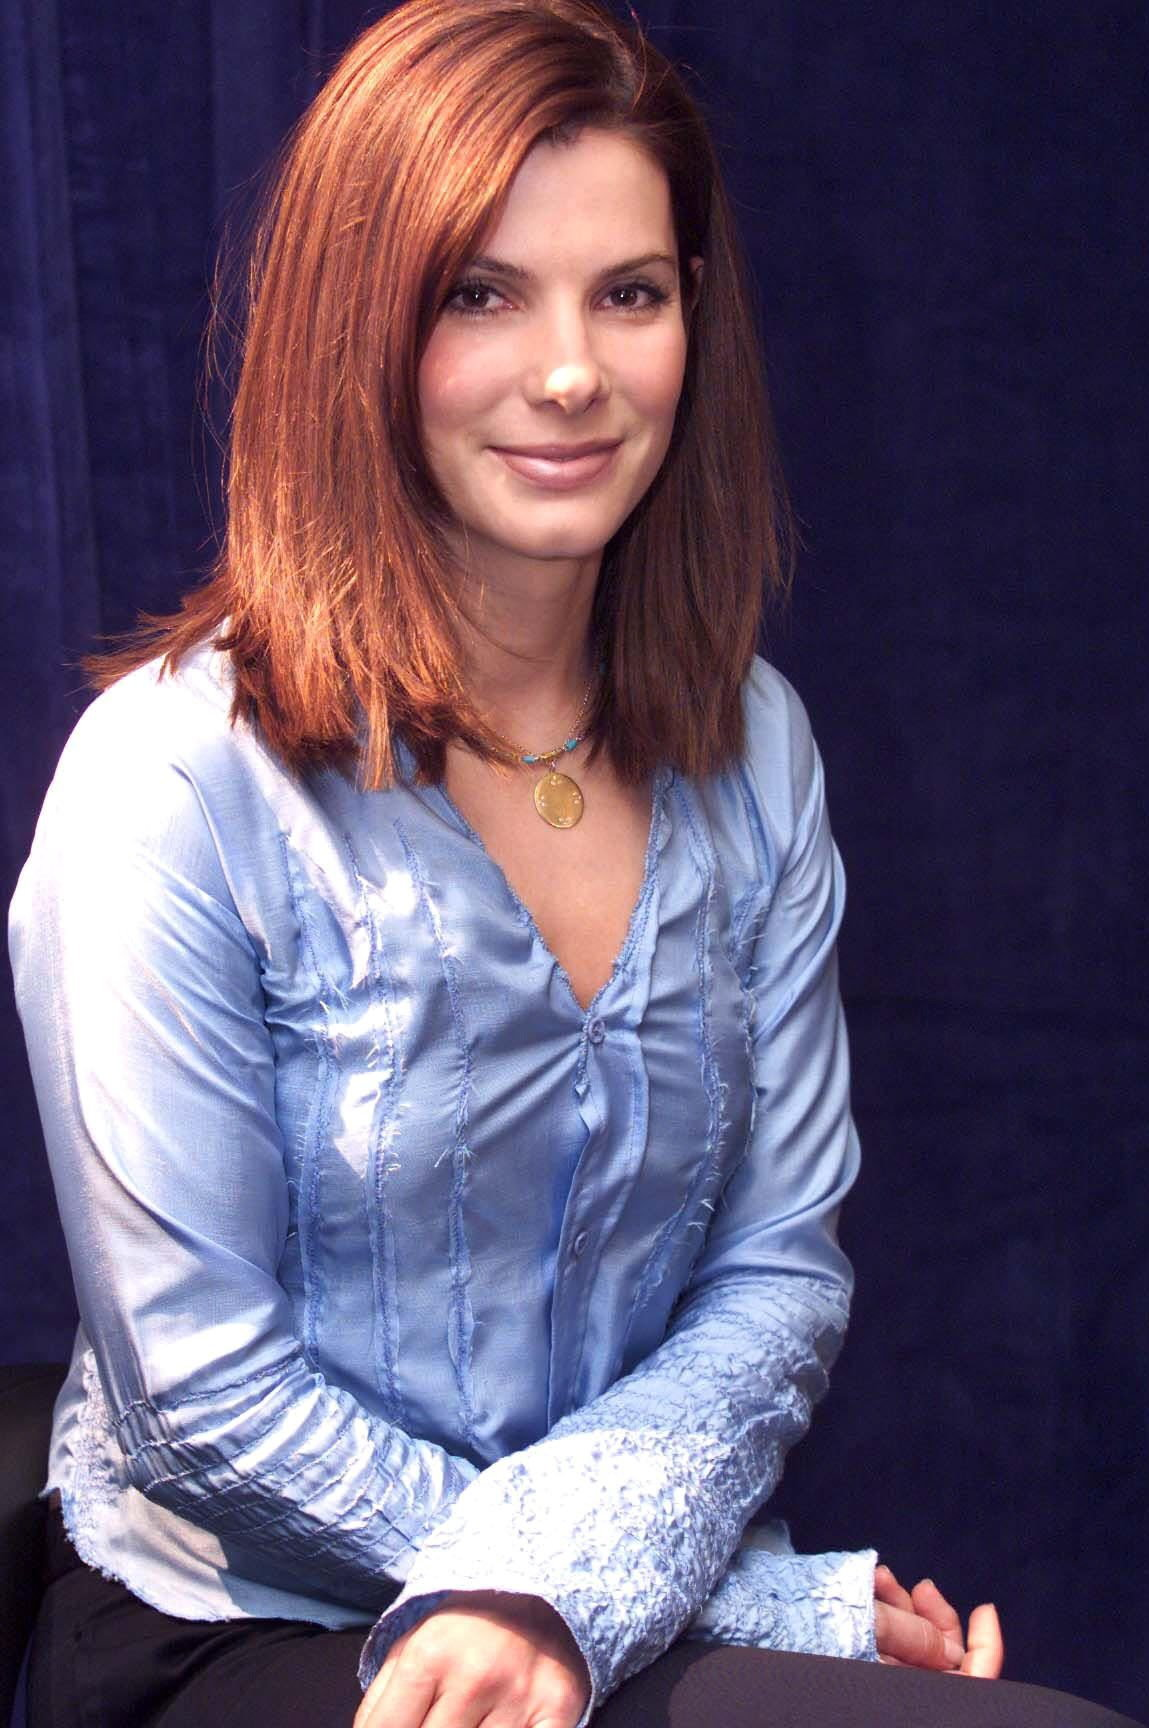 Types Of Mattresses >> Sandra Bullock Short Bob Haircut - SheClick.com